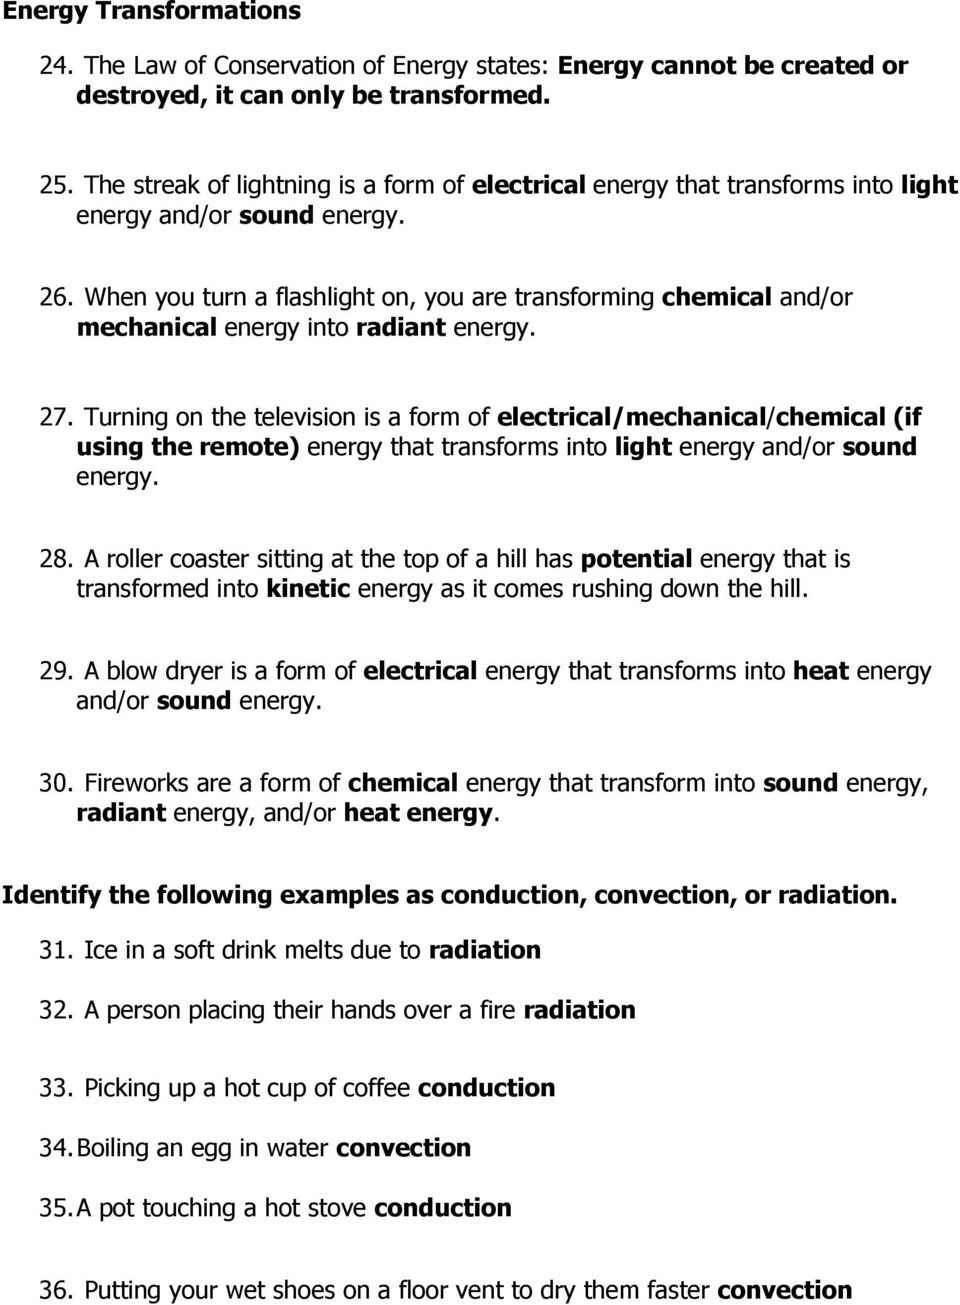 Energy Transformation Worksheet Answer Key Energy Test Study Guide Pdf Free Download